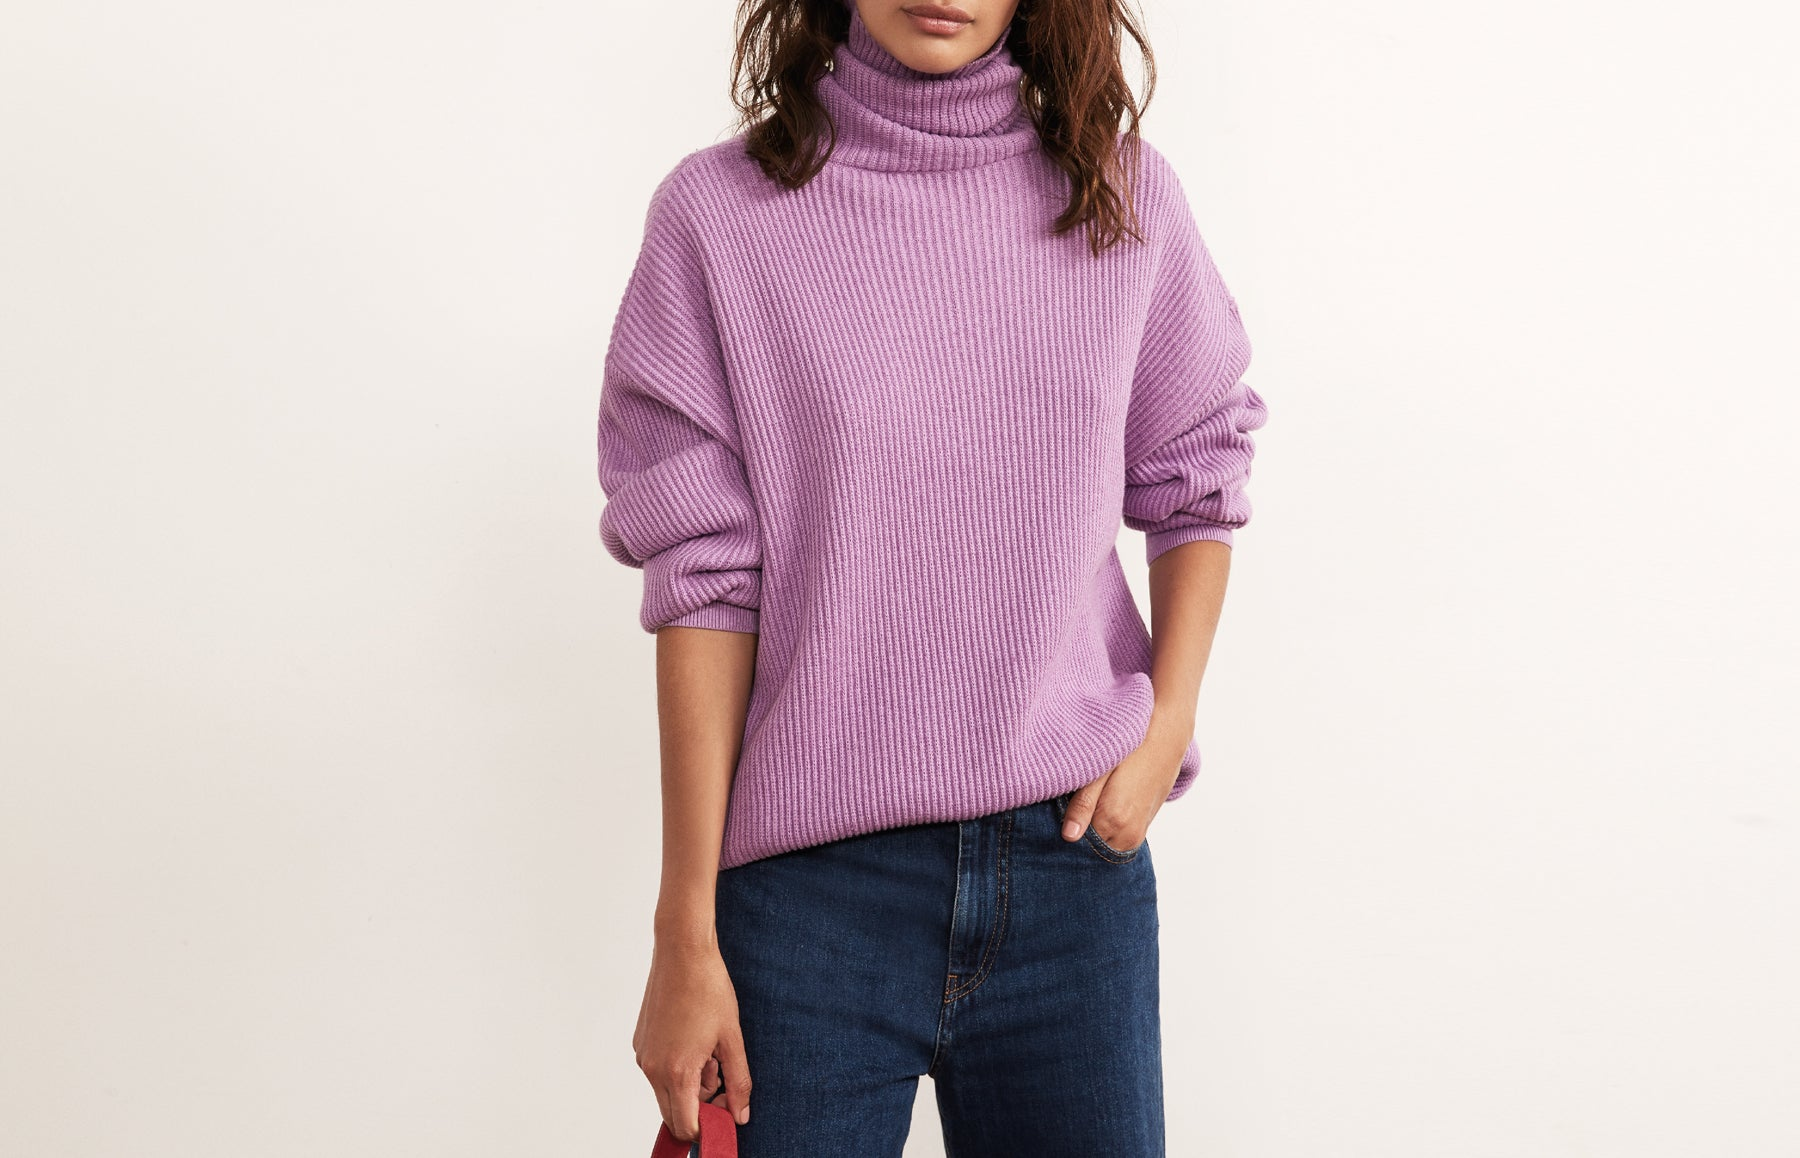 Mabel Ultraviolet Roll Neck Sweater